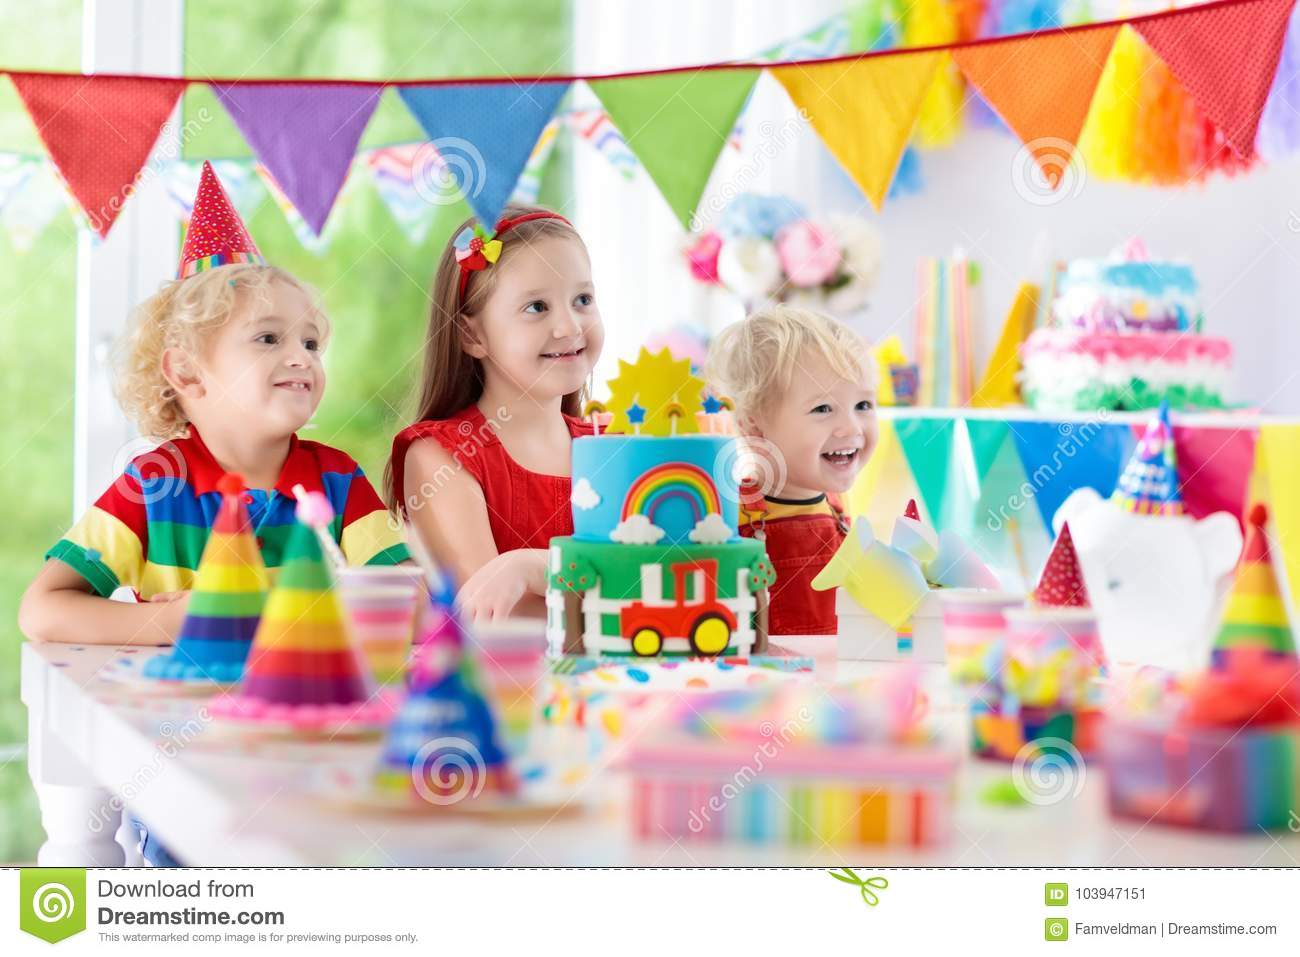 Kids Party Birthday Cake With Candles For Child Stock Image Image Of Birthday Decor 103947151